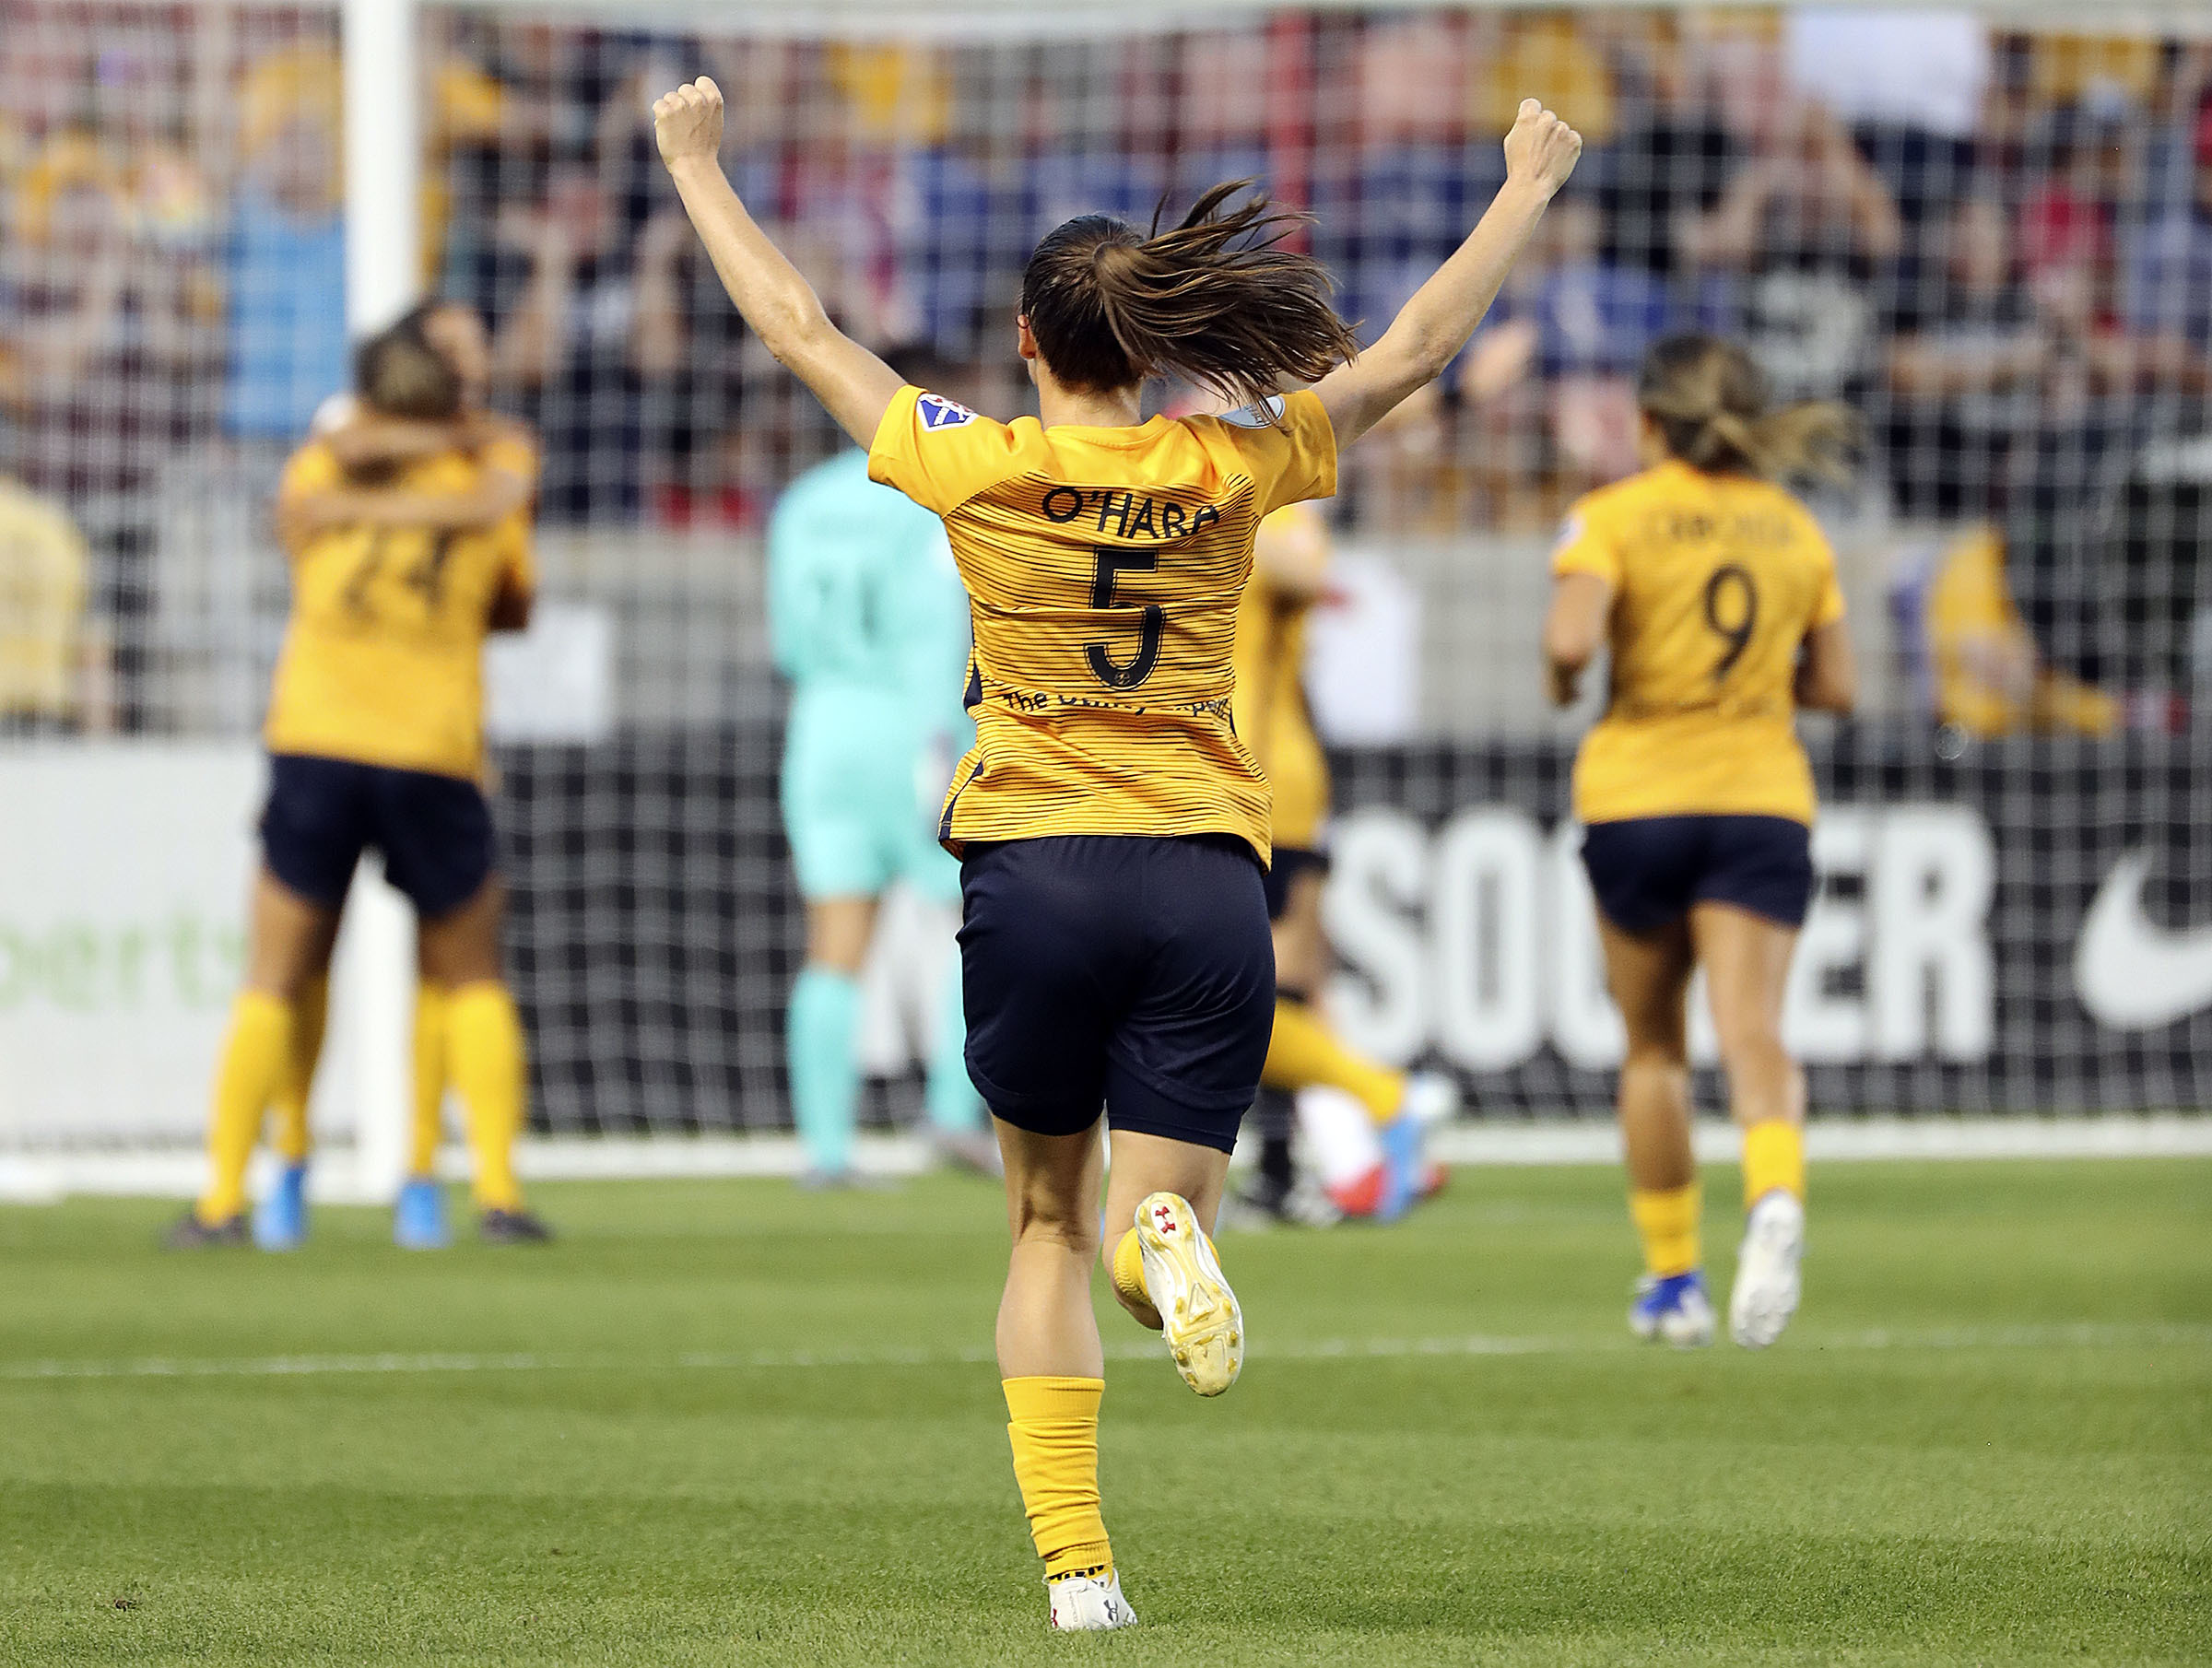 Utah Royals FC defender Kelley O'Hara (5) celebrates a Royals goal during a soccer game against the Portland Thorns FC in a soccer game at Rio Tinto Stadium in Sandy on Friday, July 19, 2019.